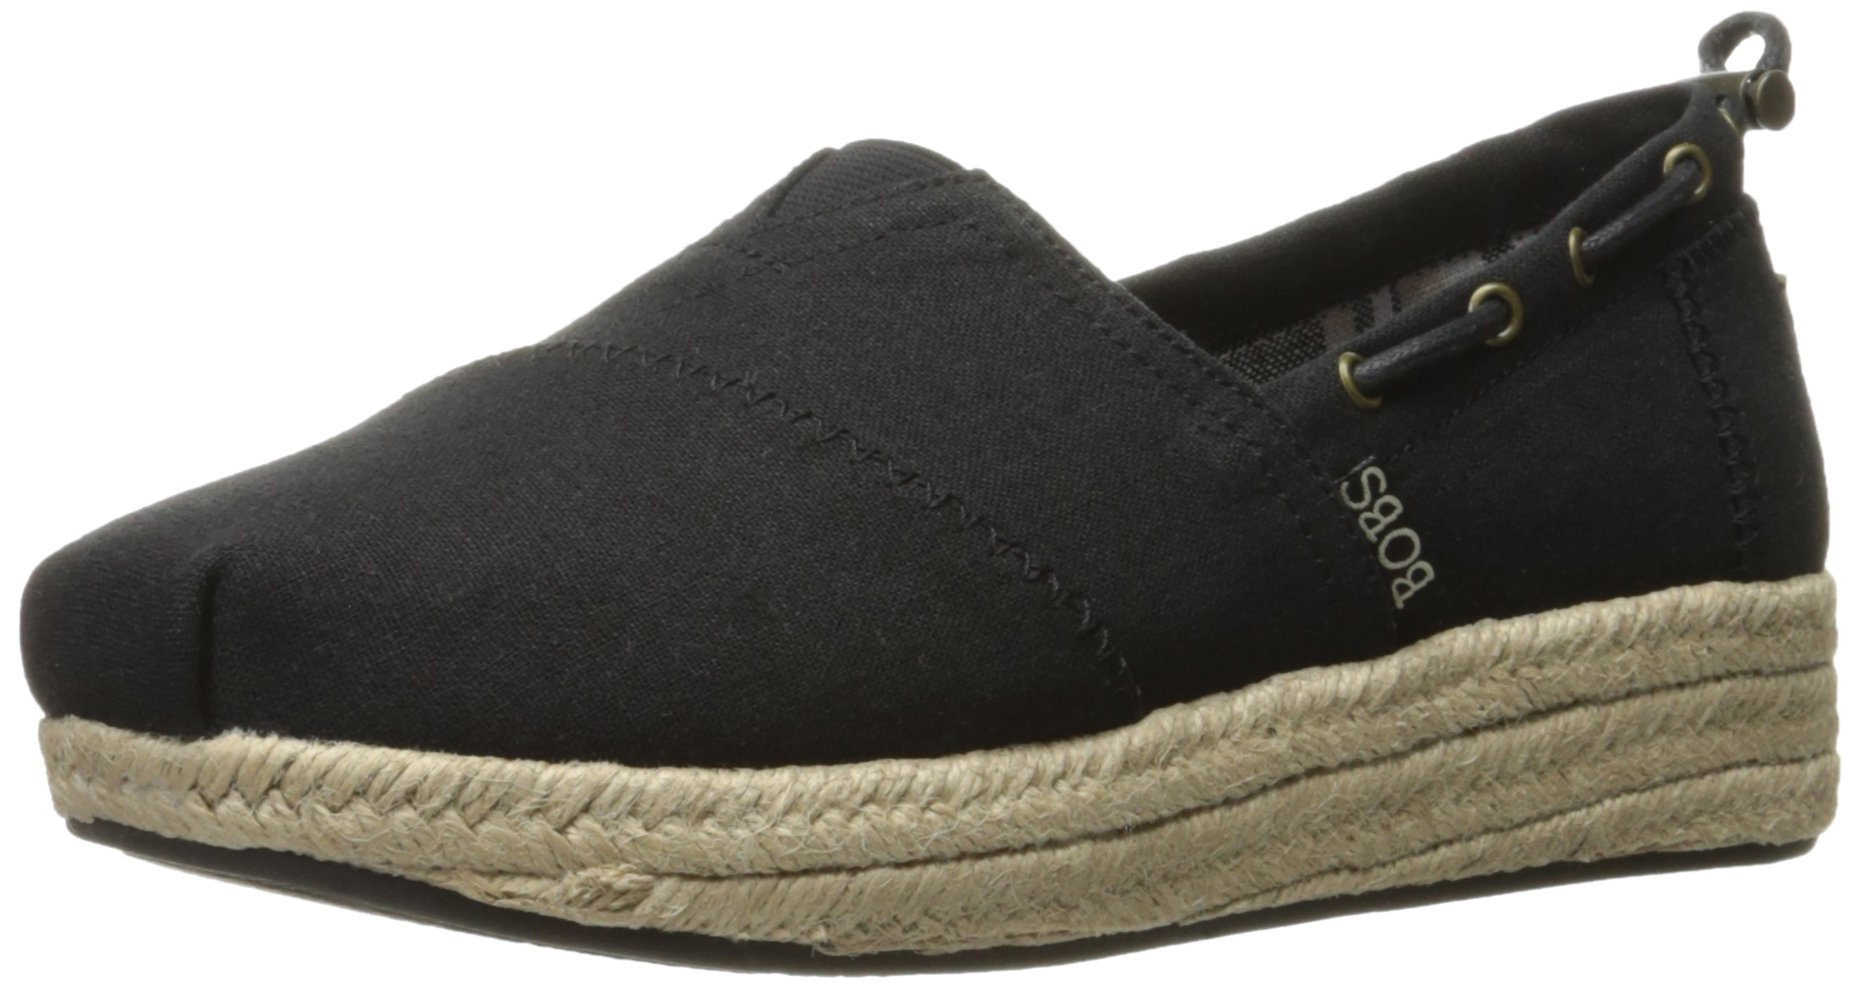 Skechers BOBS from Women's Highlights-Set Sail Flat, Black Sail, 5.5 M US